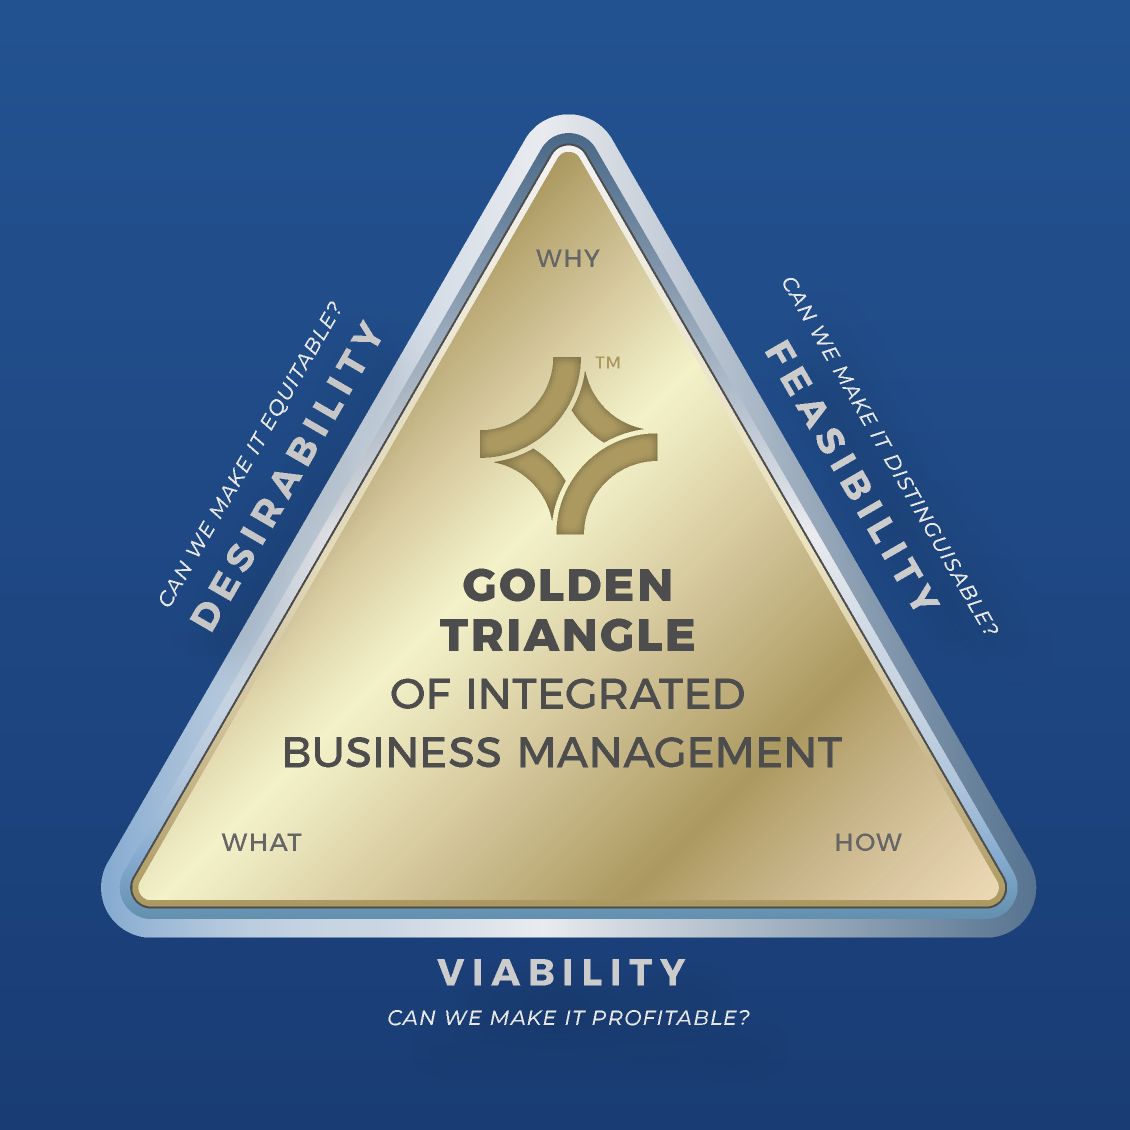 ROUNDMAP_Golden_Triangle_of_IBM_copyright_protected